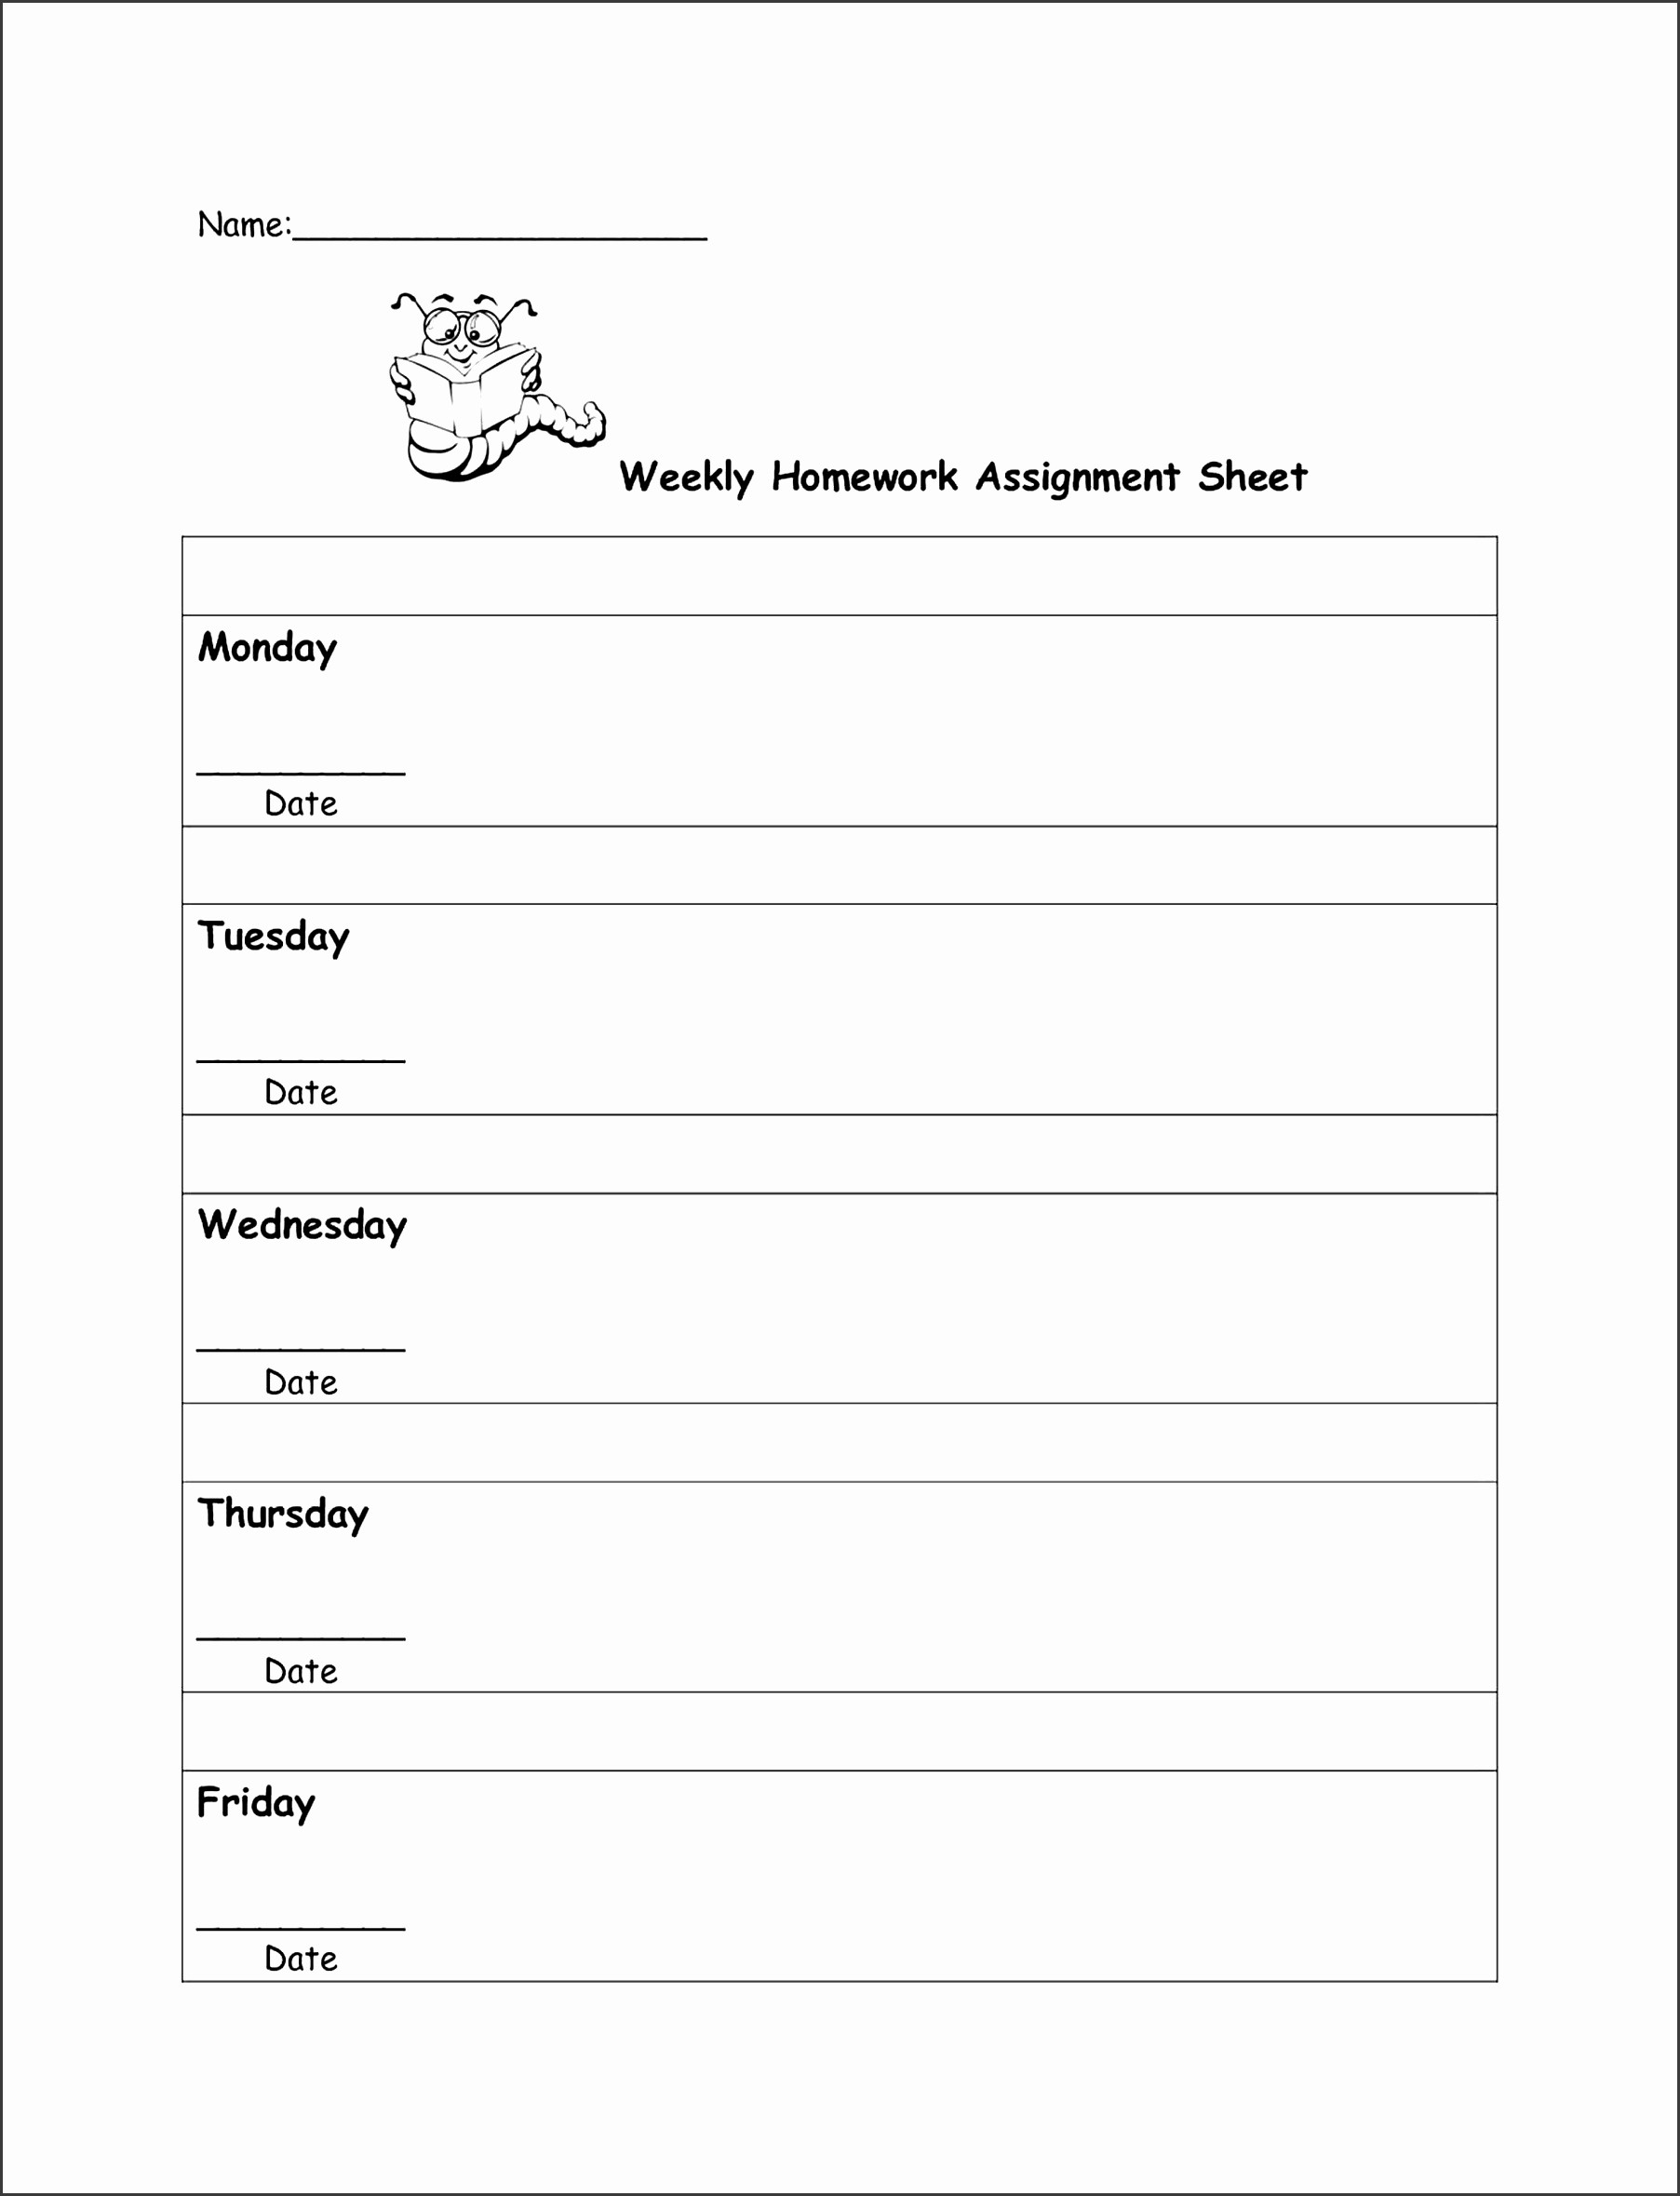 Weekly Homework assignment Sheet Template Best Of 9 Student assignment Planner Template In Excel